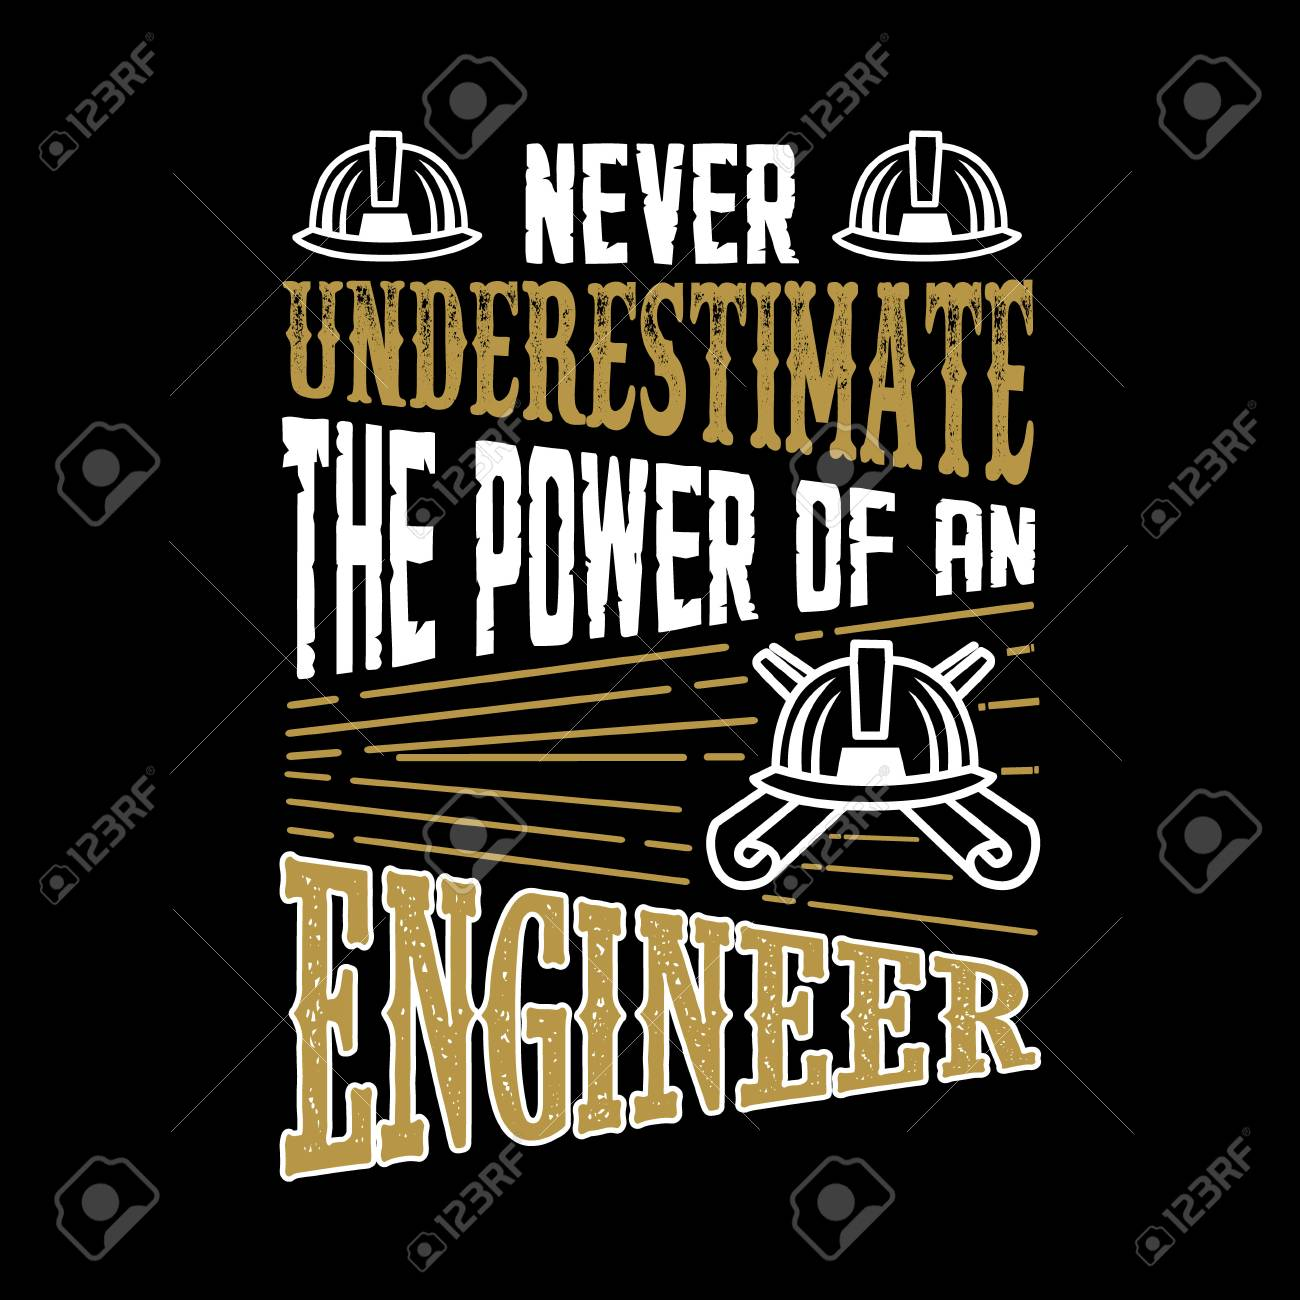 Never Underestimate The power of an Engineer - 117043969